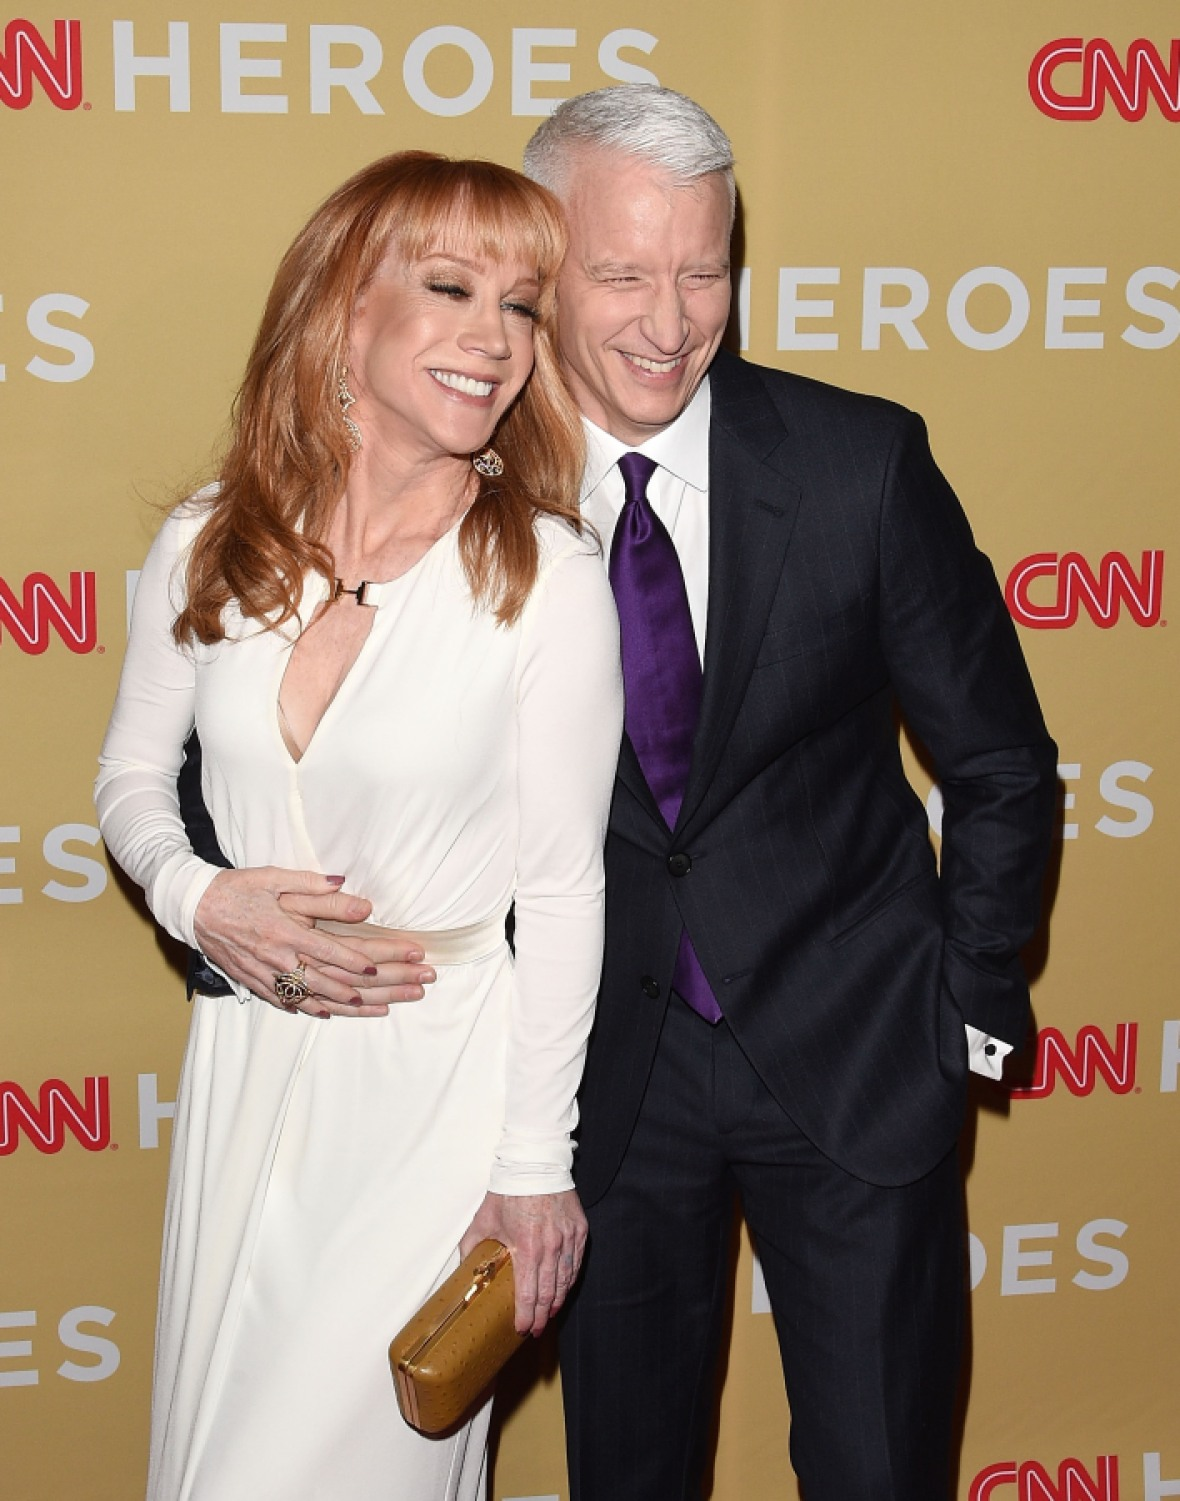 anderson cooper kathy griffin getty images